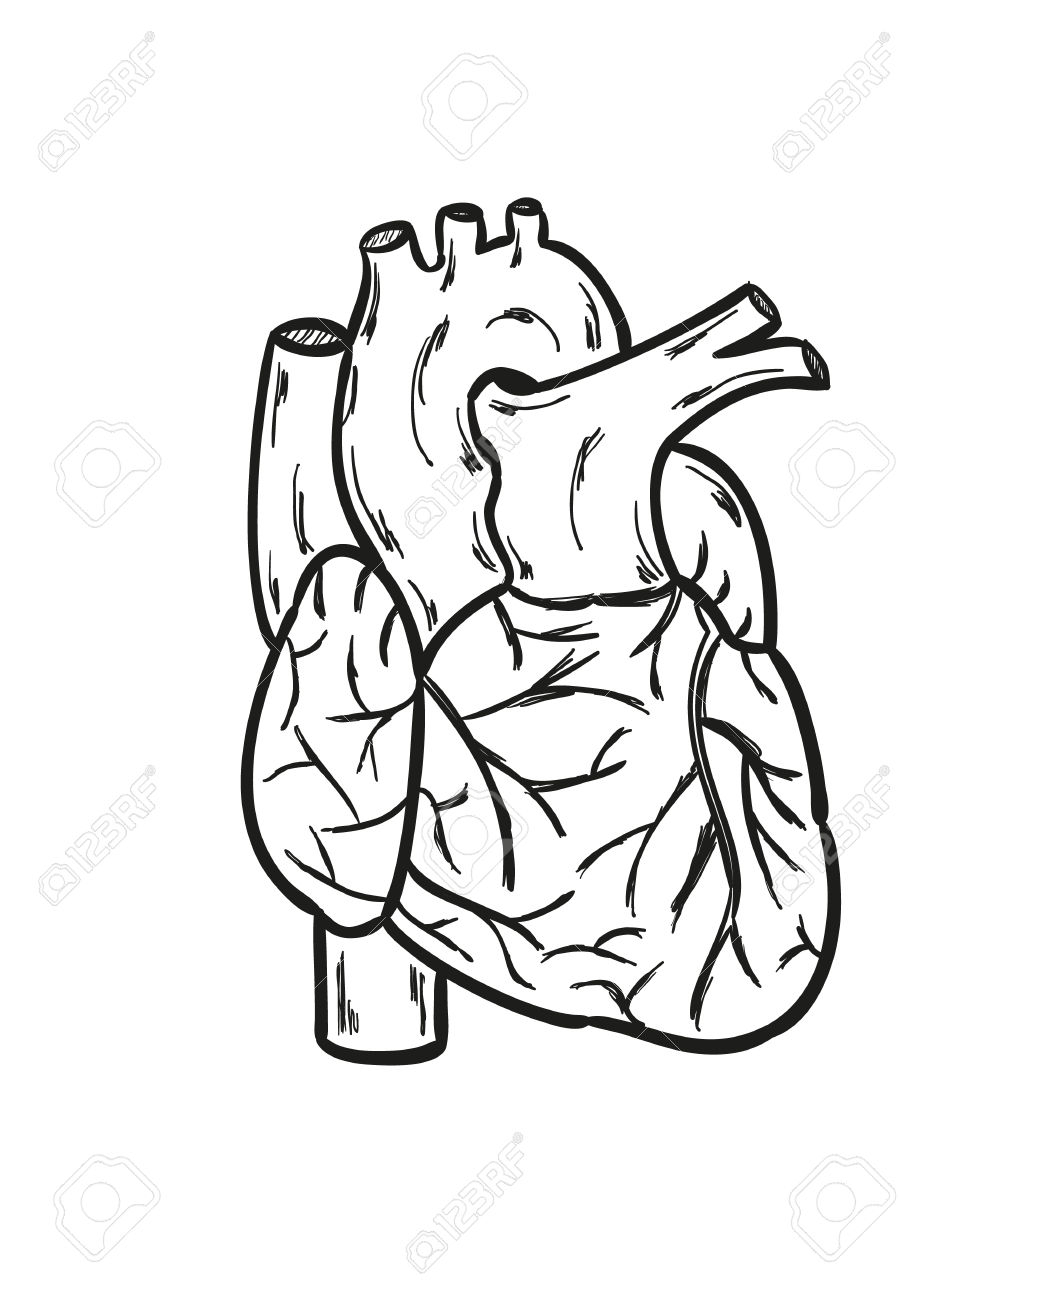 Human heart cliparts banner black and white Human Heart Black And White With Lables Human Heart Clip Art Black ... banner black and white